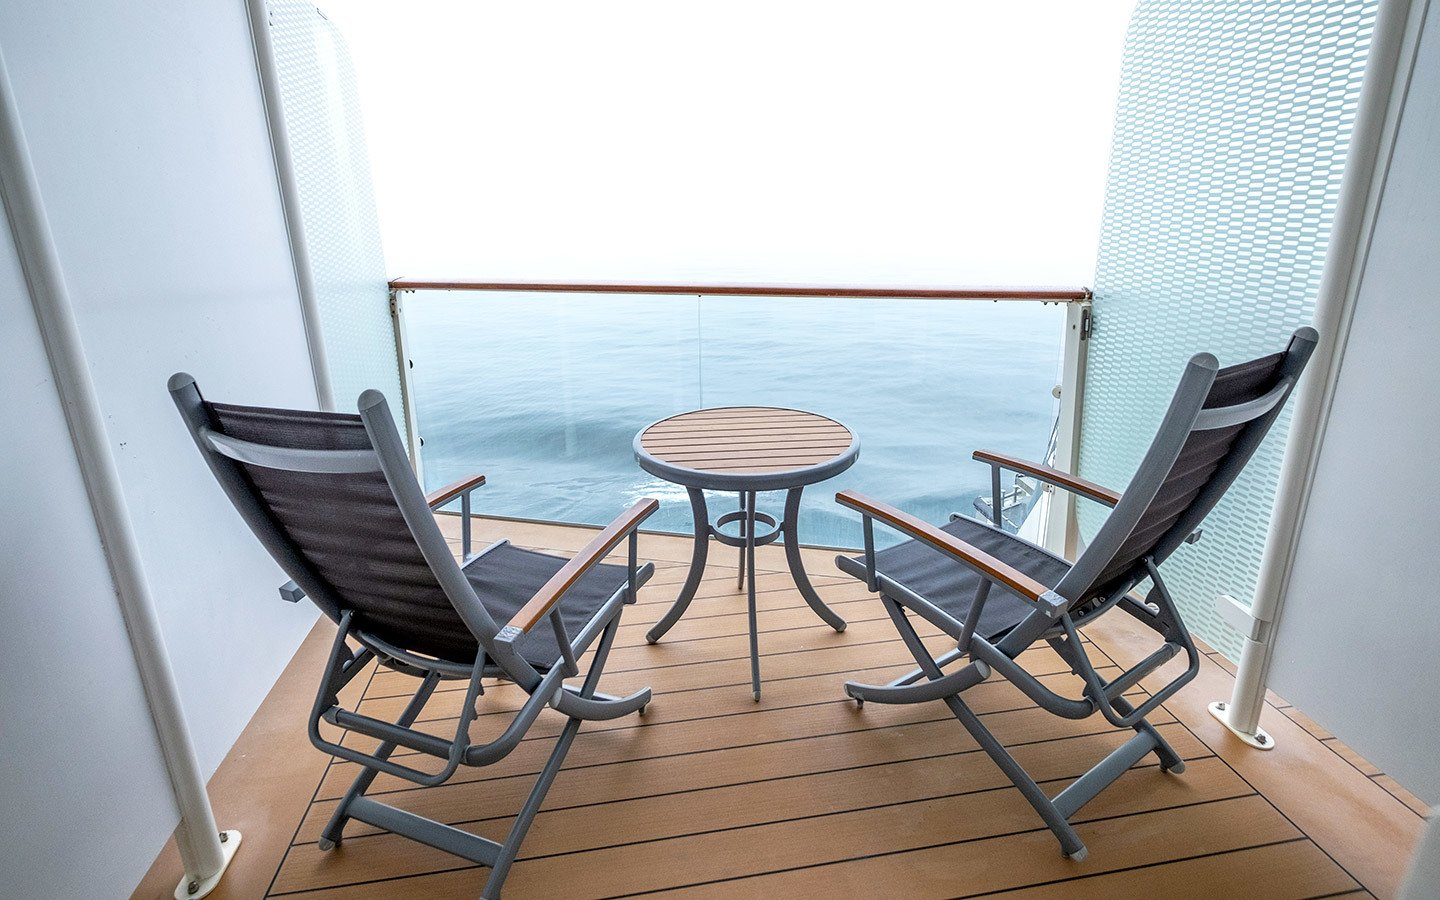 Misty morning on a cruise ship balcony